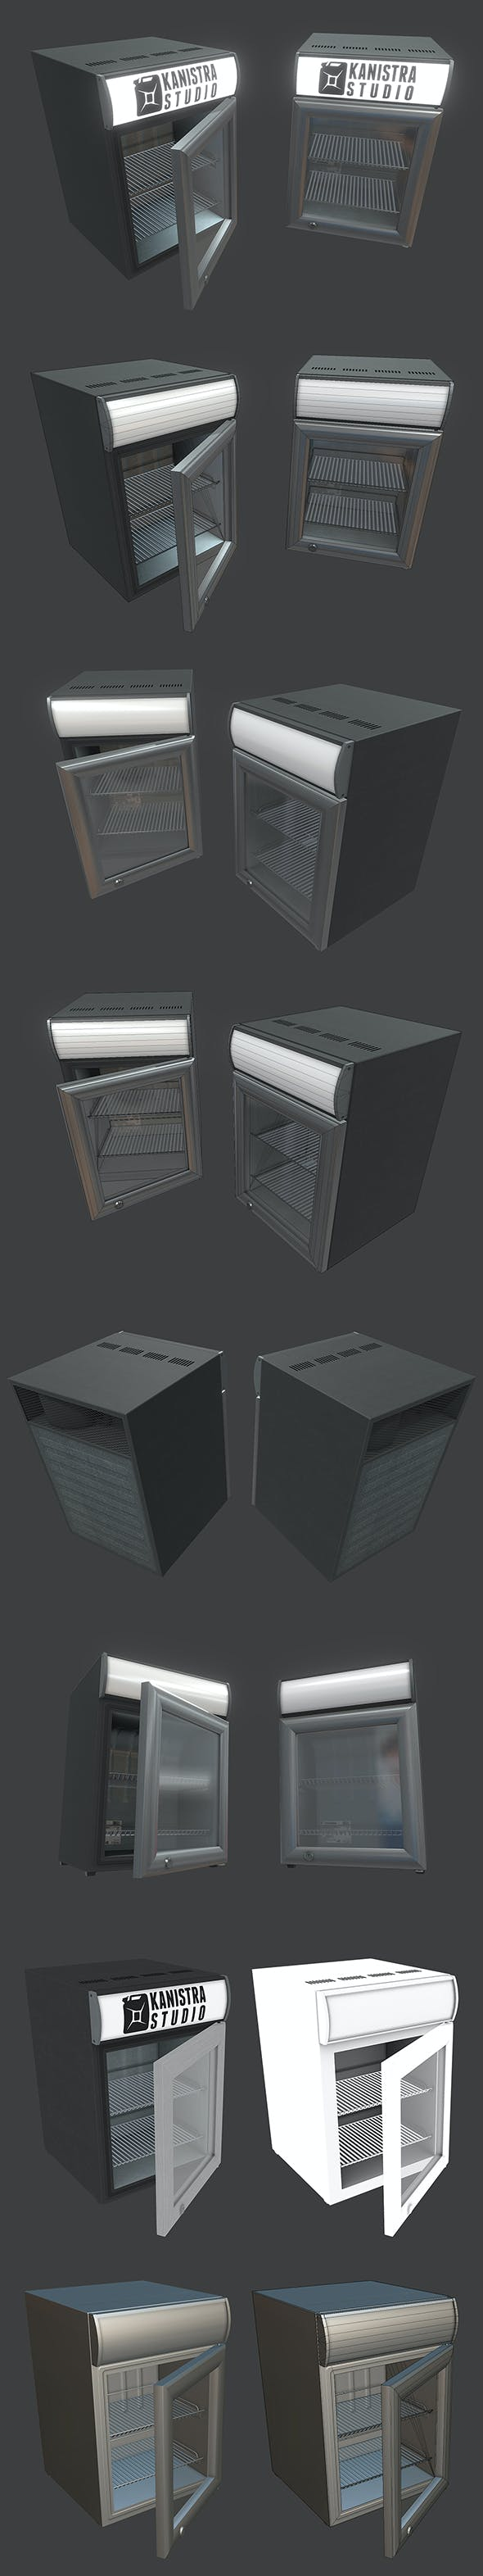 Small Fridge - 3DOcean Item for Sale